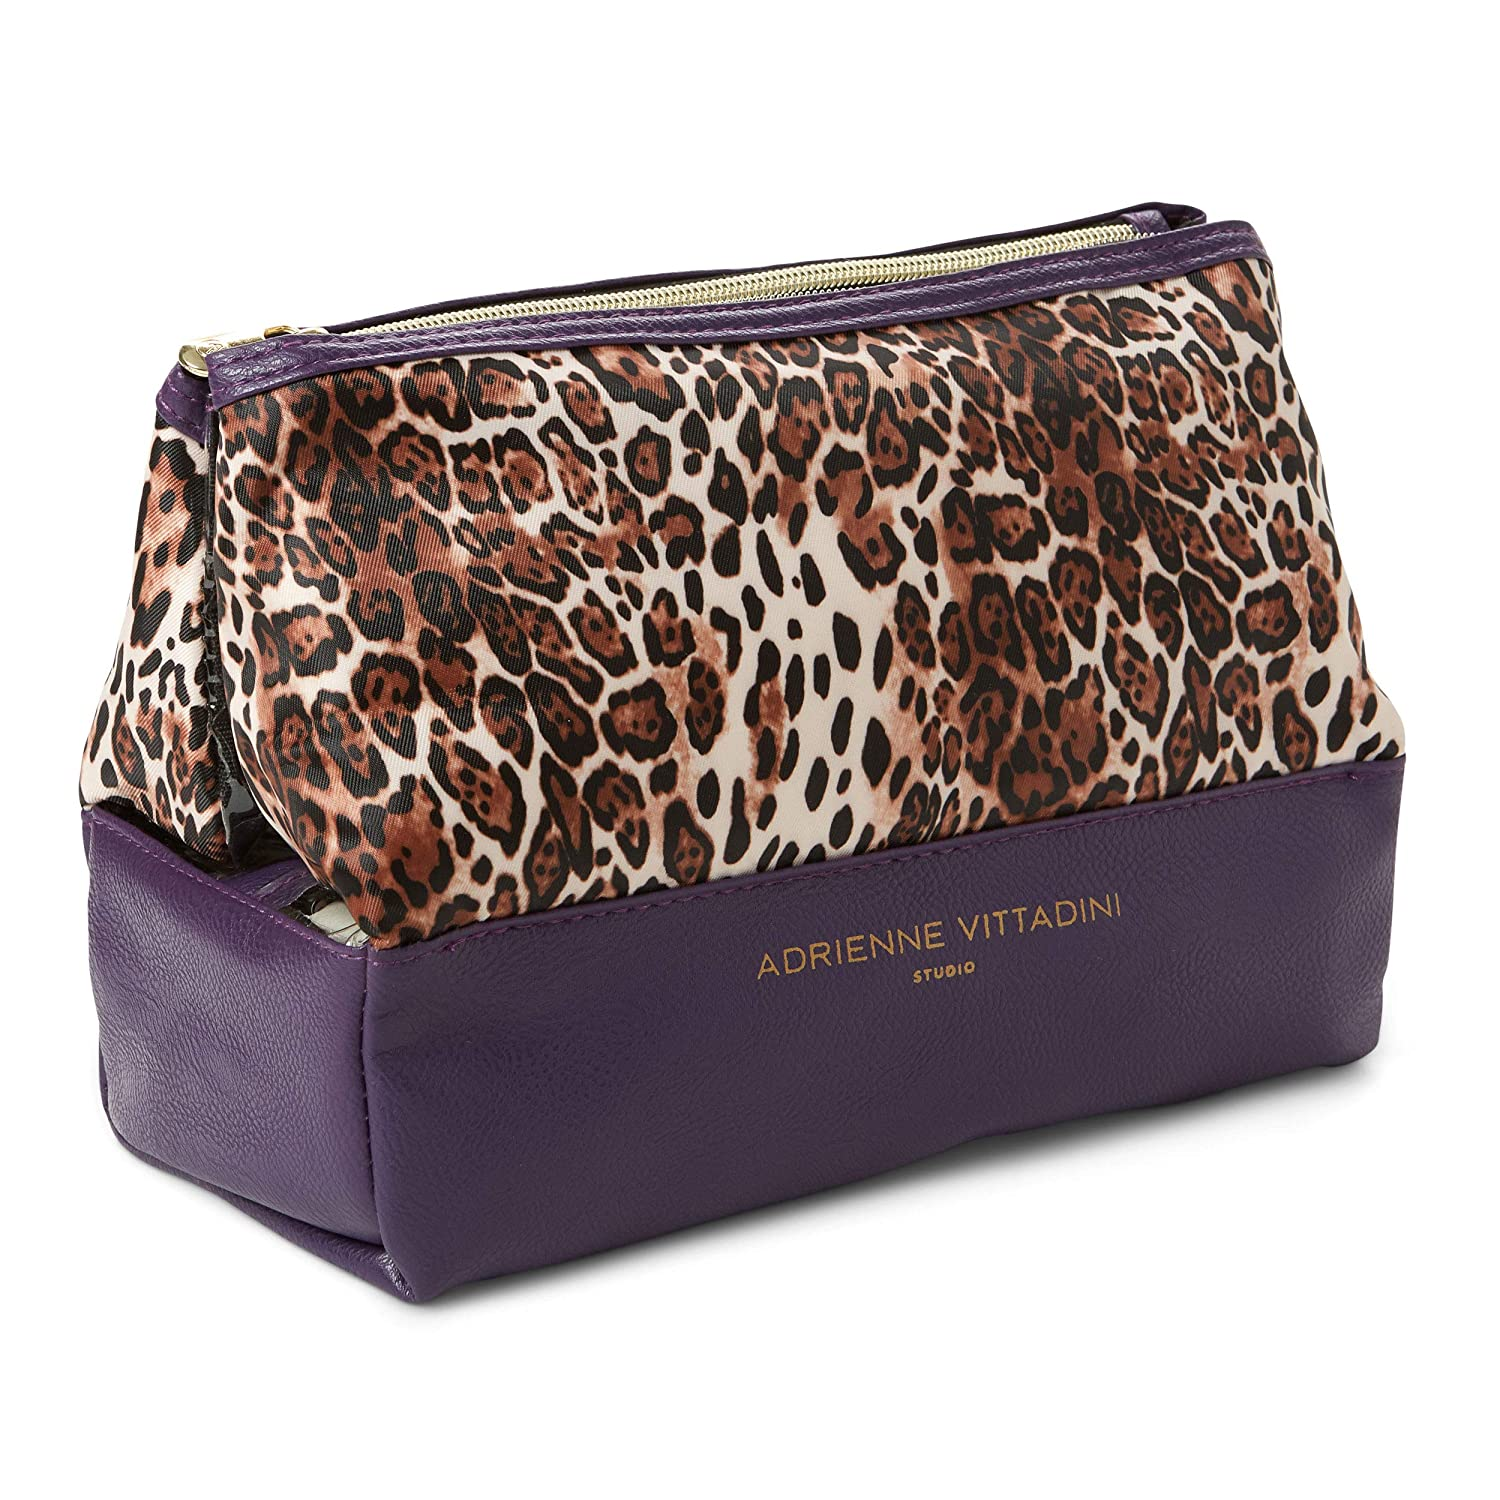 Adrienne Vittadini Cosmetic Makeup Bags Compact Travel Toiletry Bag – Leopard Print